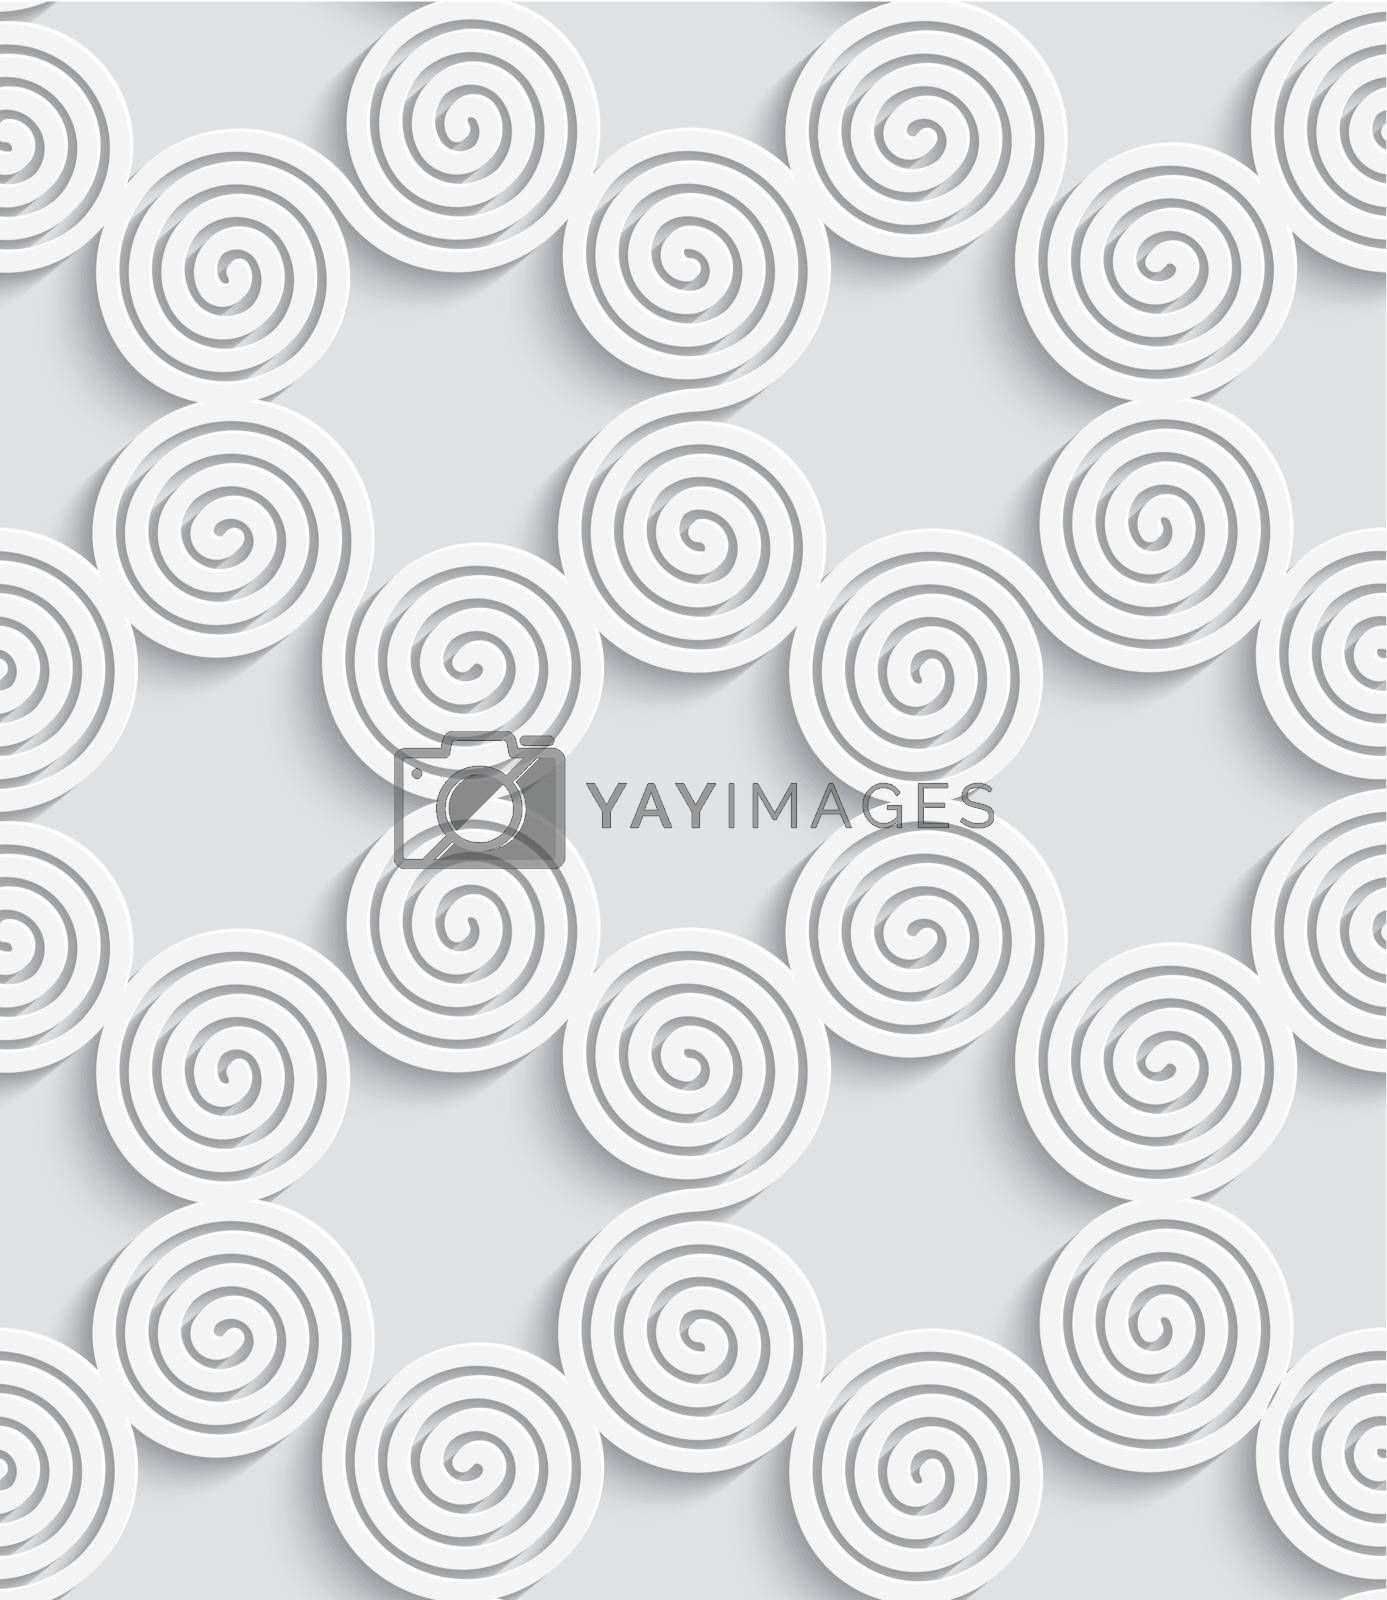 Spiral cut out white seamless background by Zebra-Finch